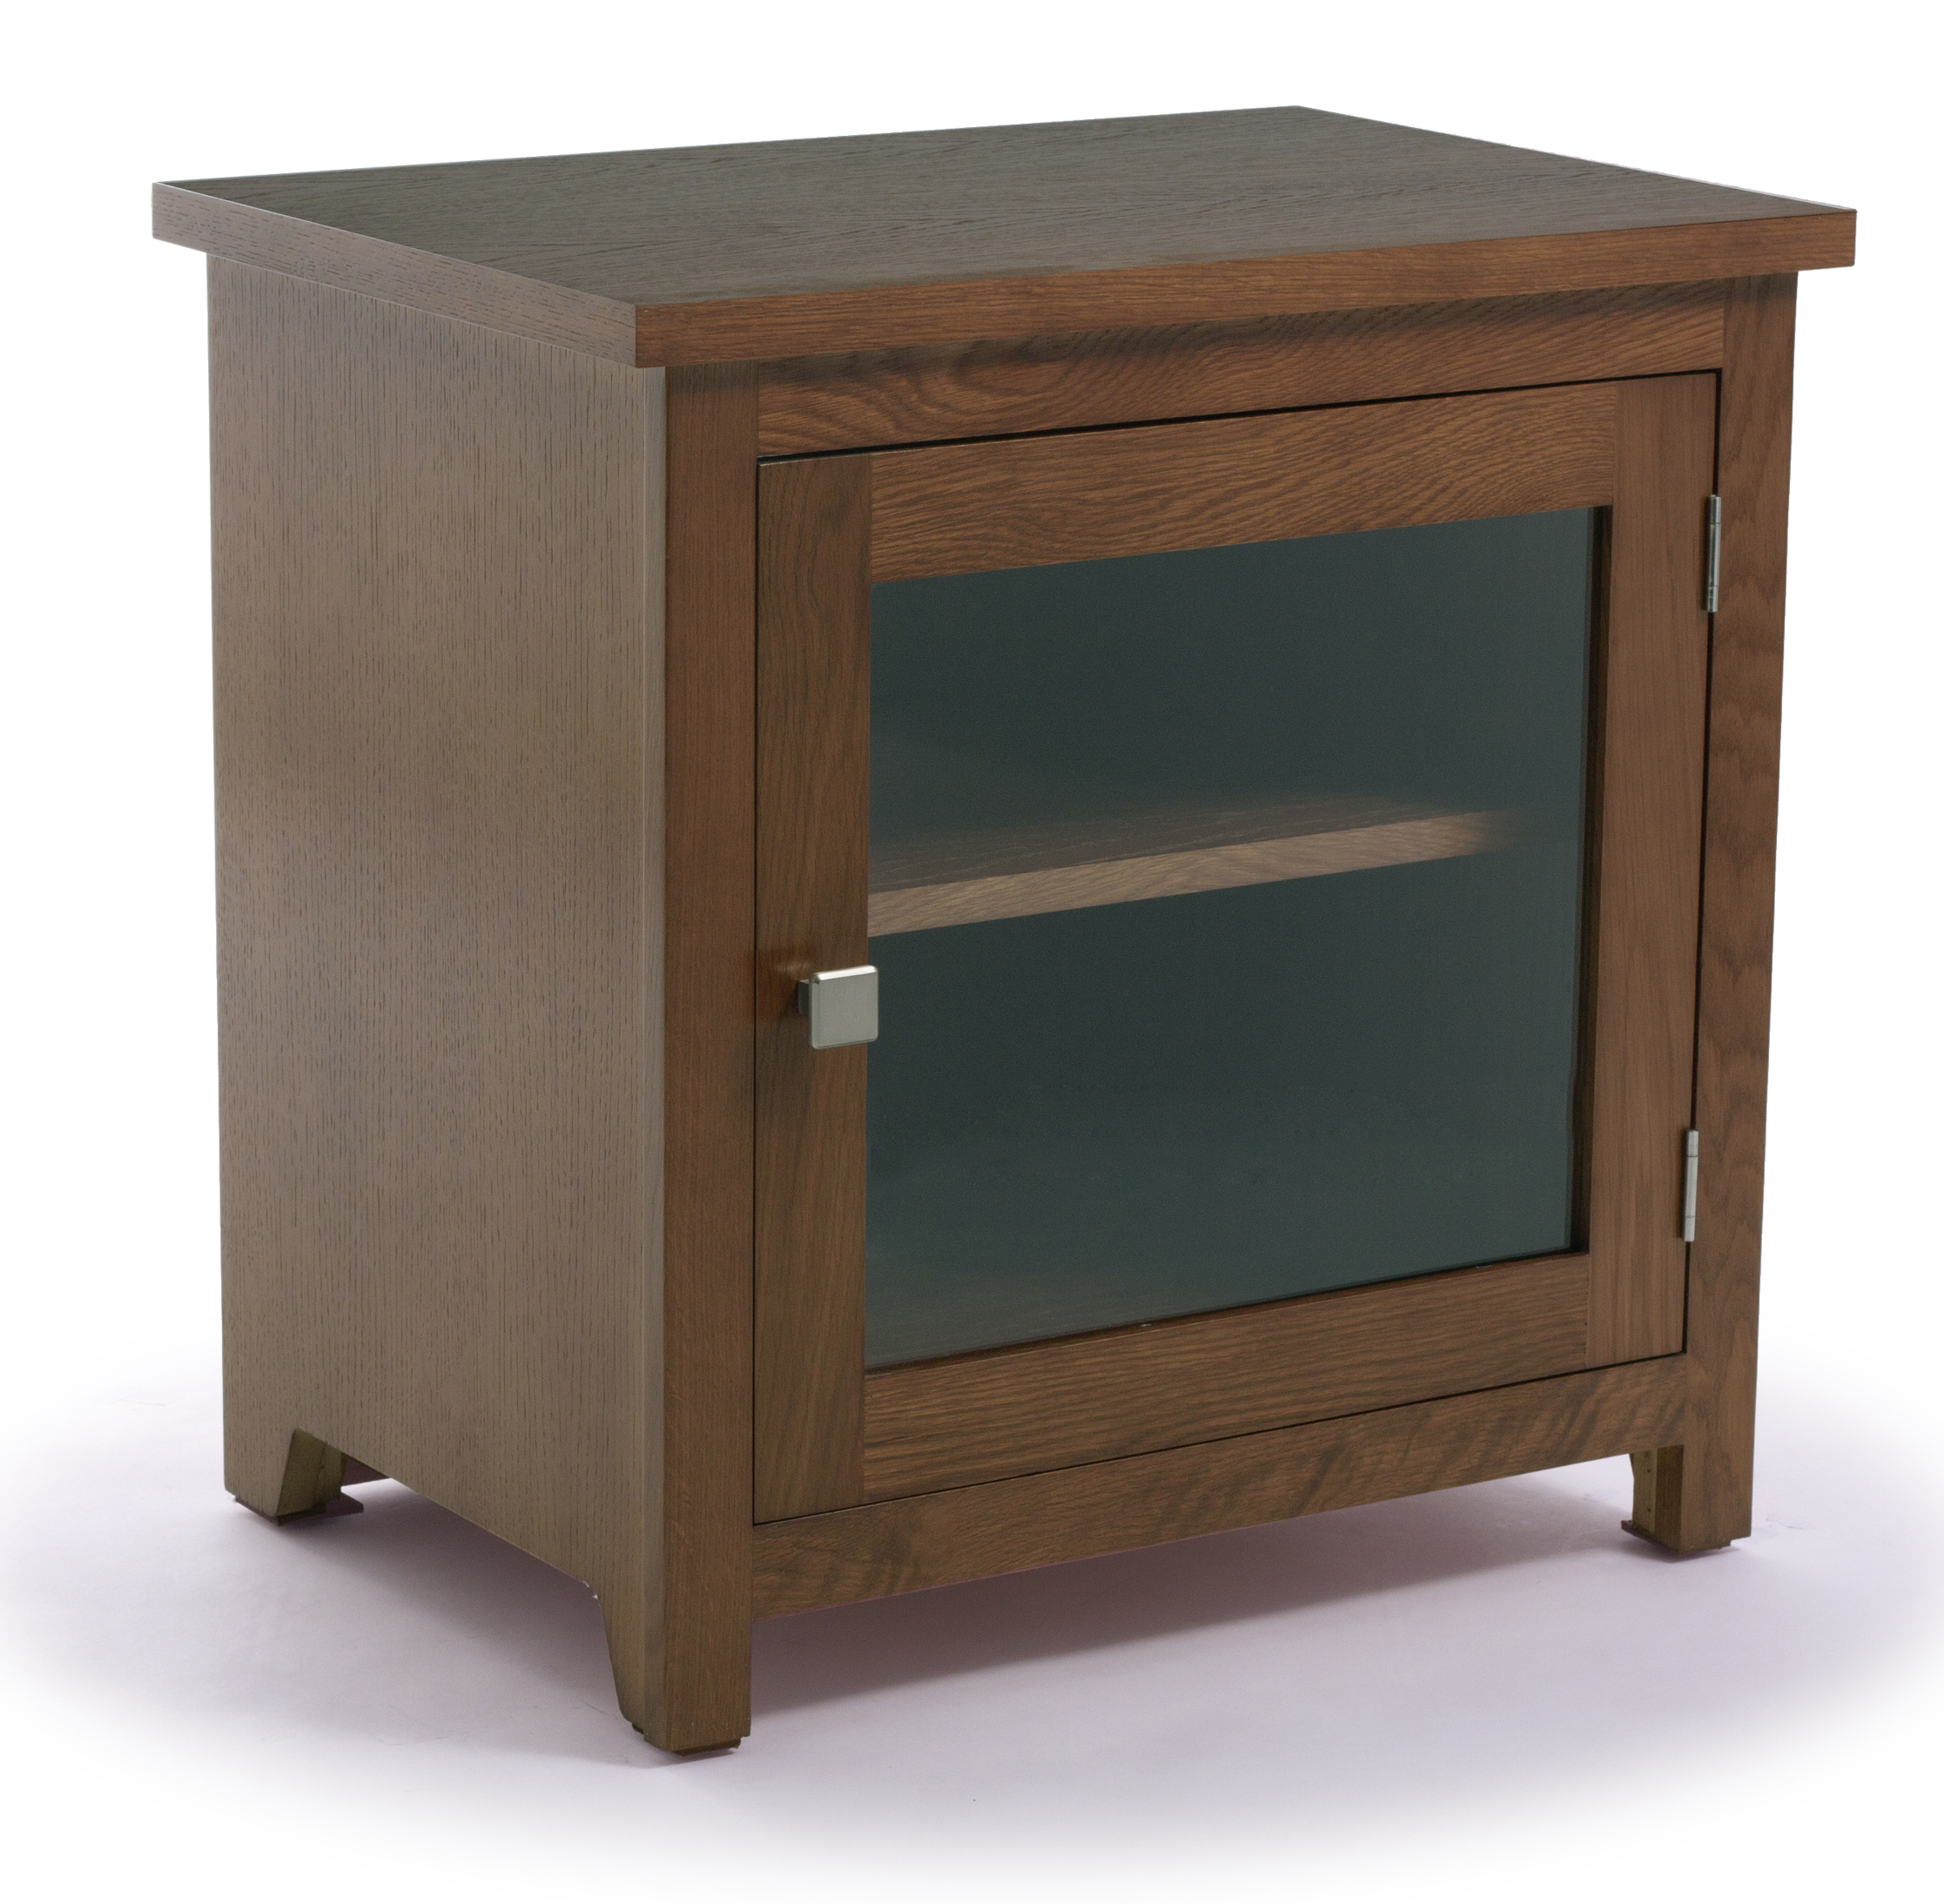 Modern classic hi fi unit cfs contract furniture solutions for Modern classic furniture